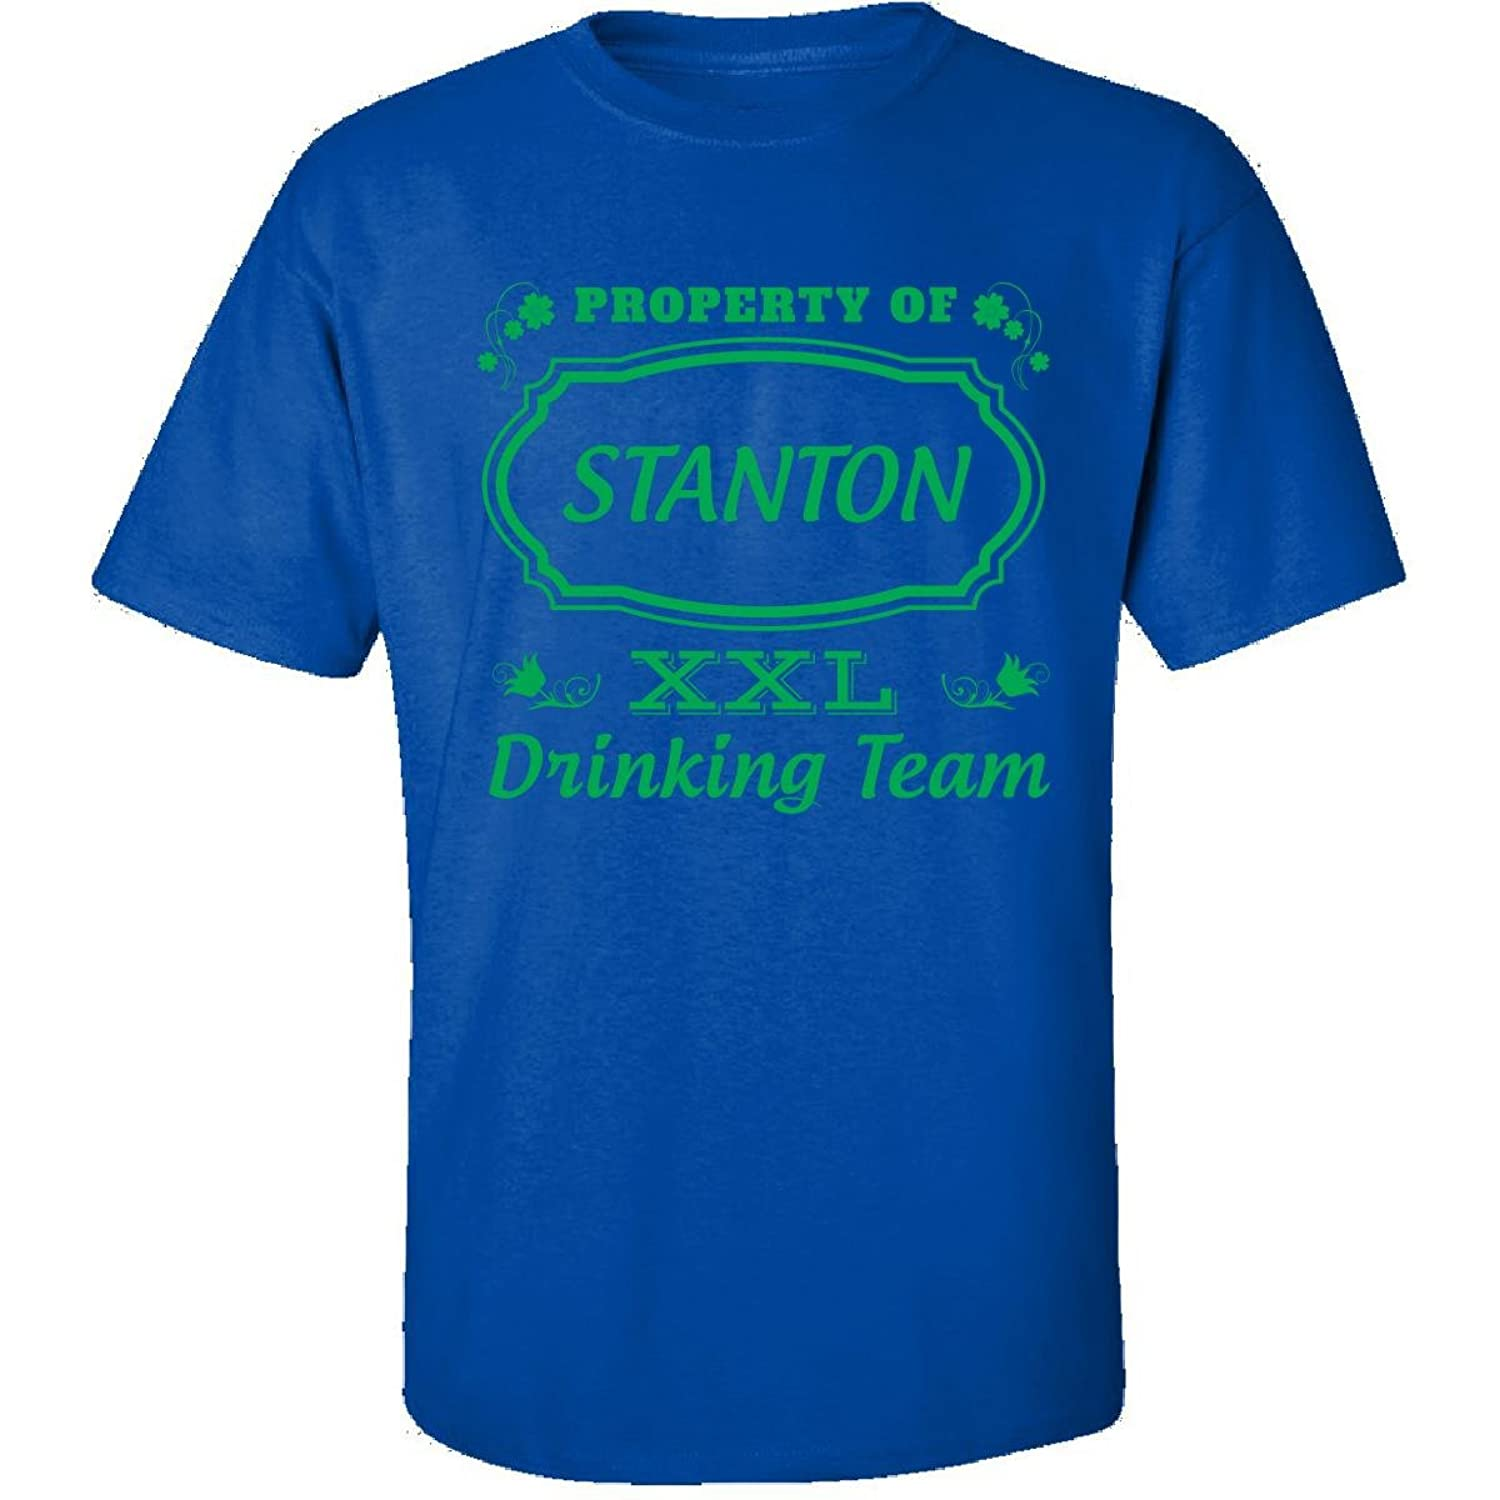 Property Of Stanton St Patrick Day Beer Drinking Team - Adult Shirt